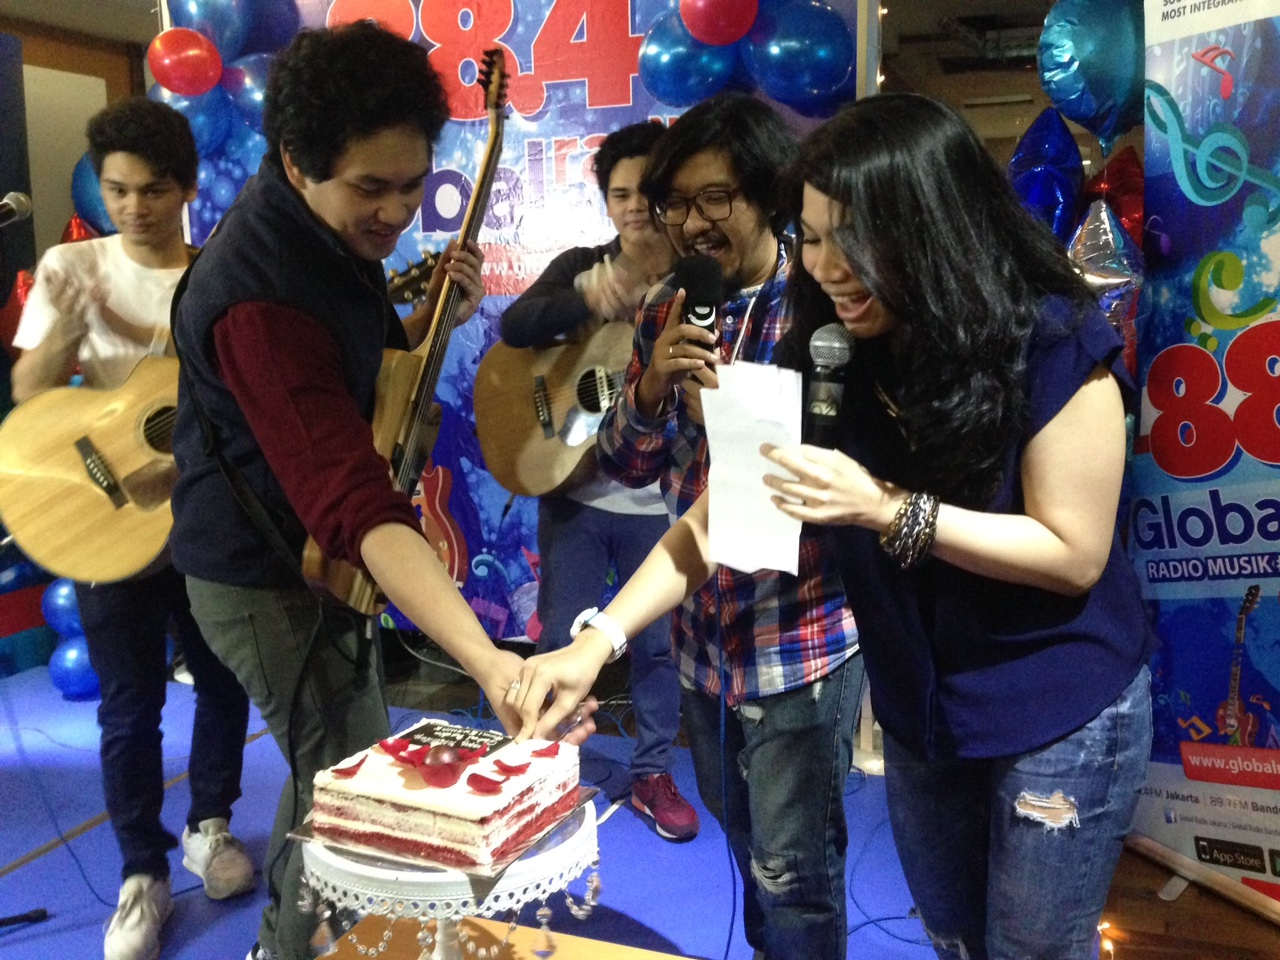 Potong kue bareng The Overtunes